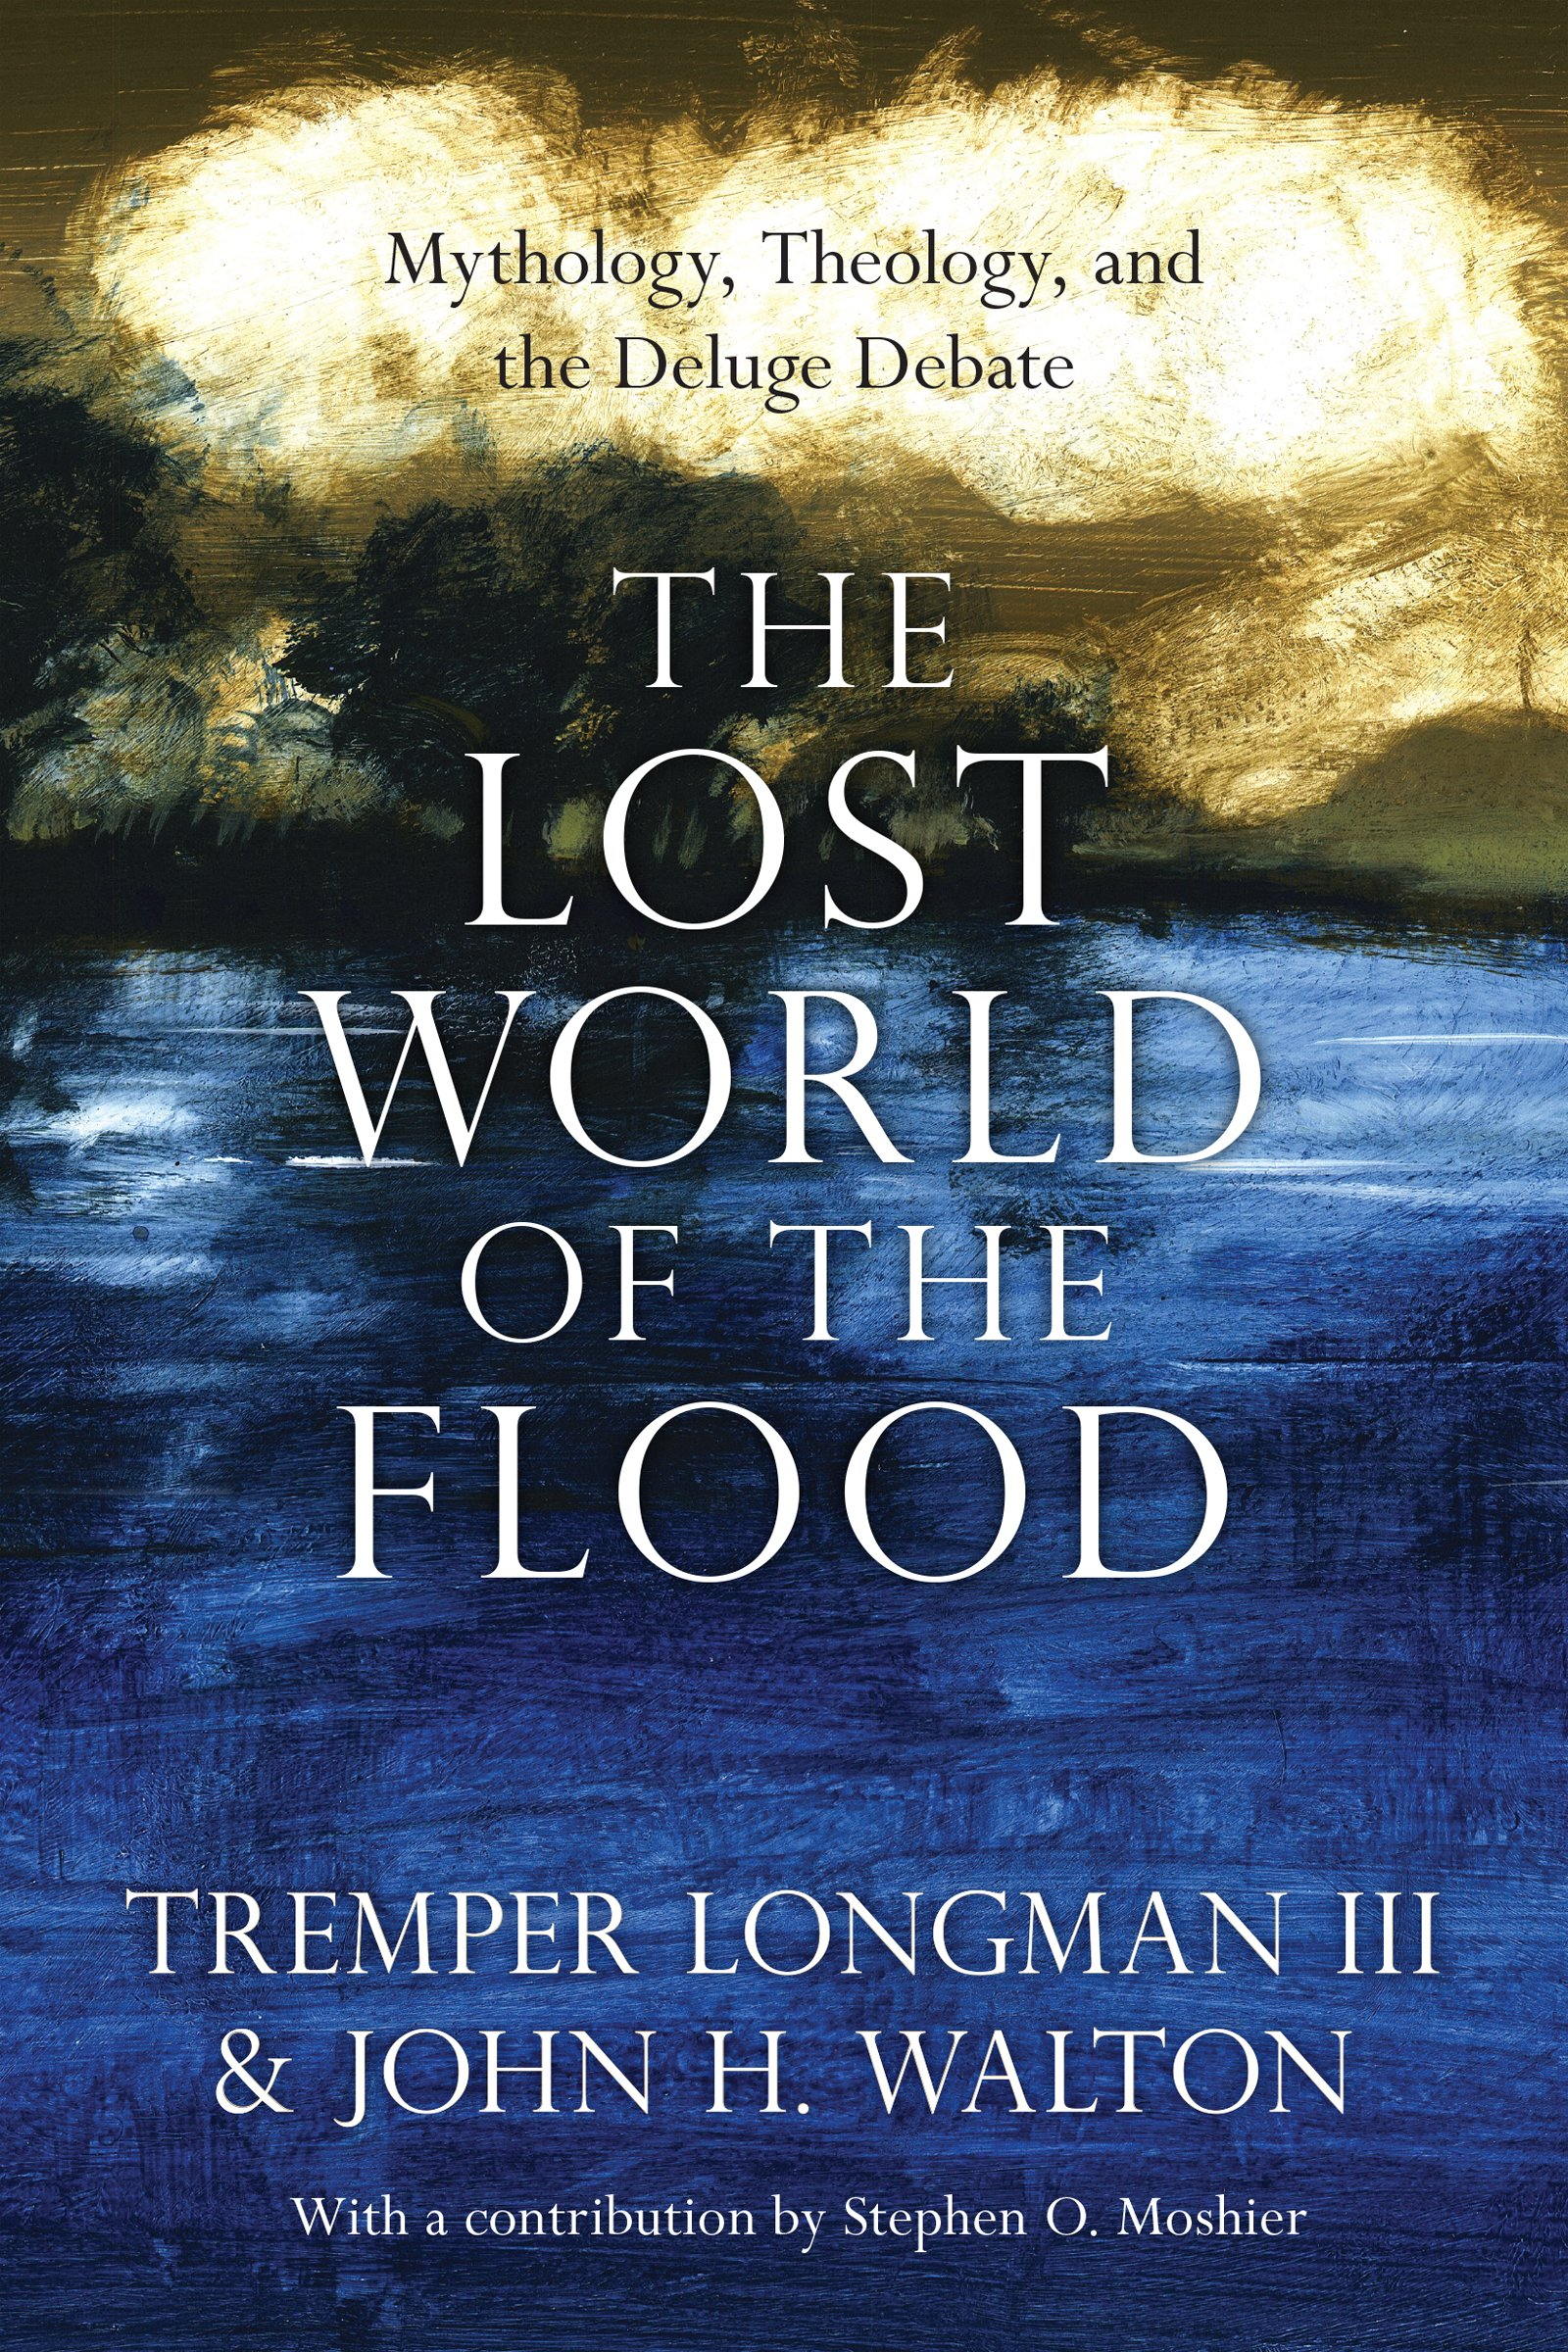 the lost world of the flood mythology theology and the deluge